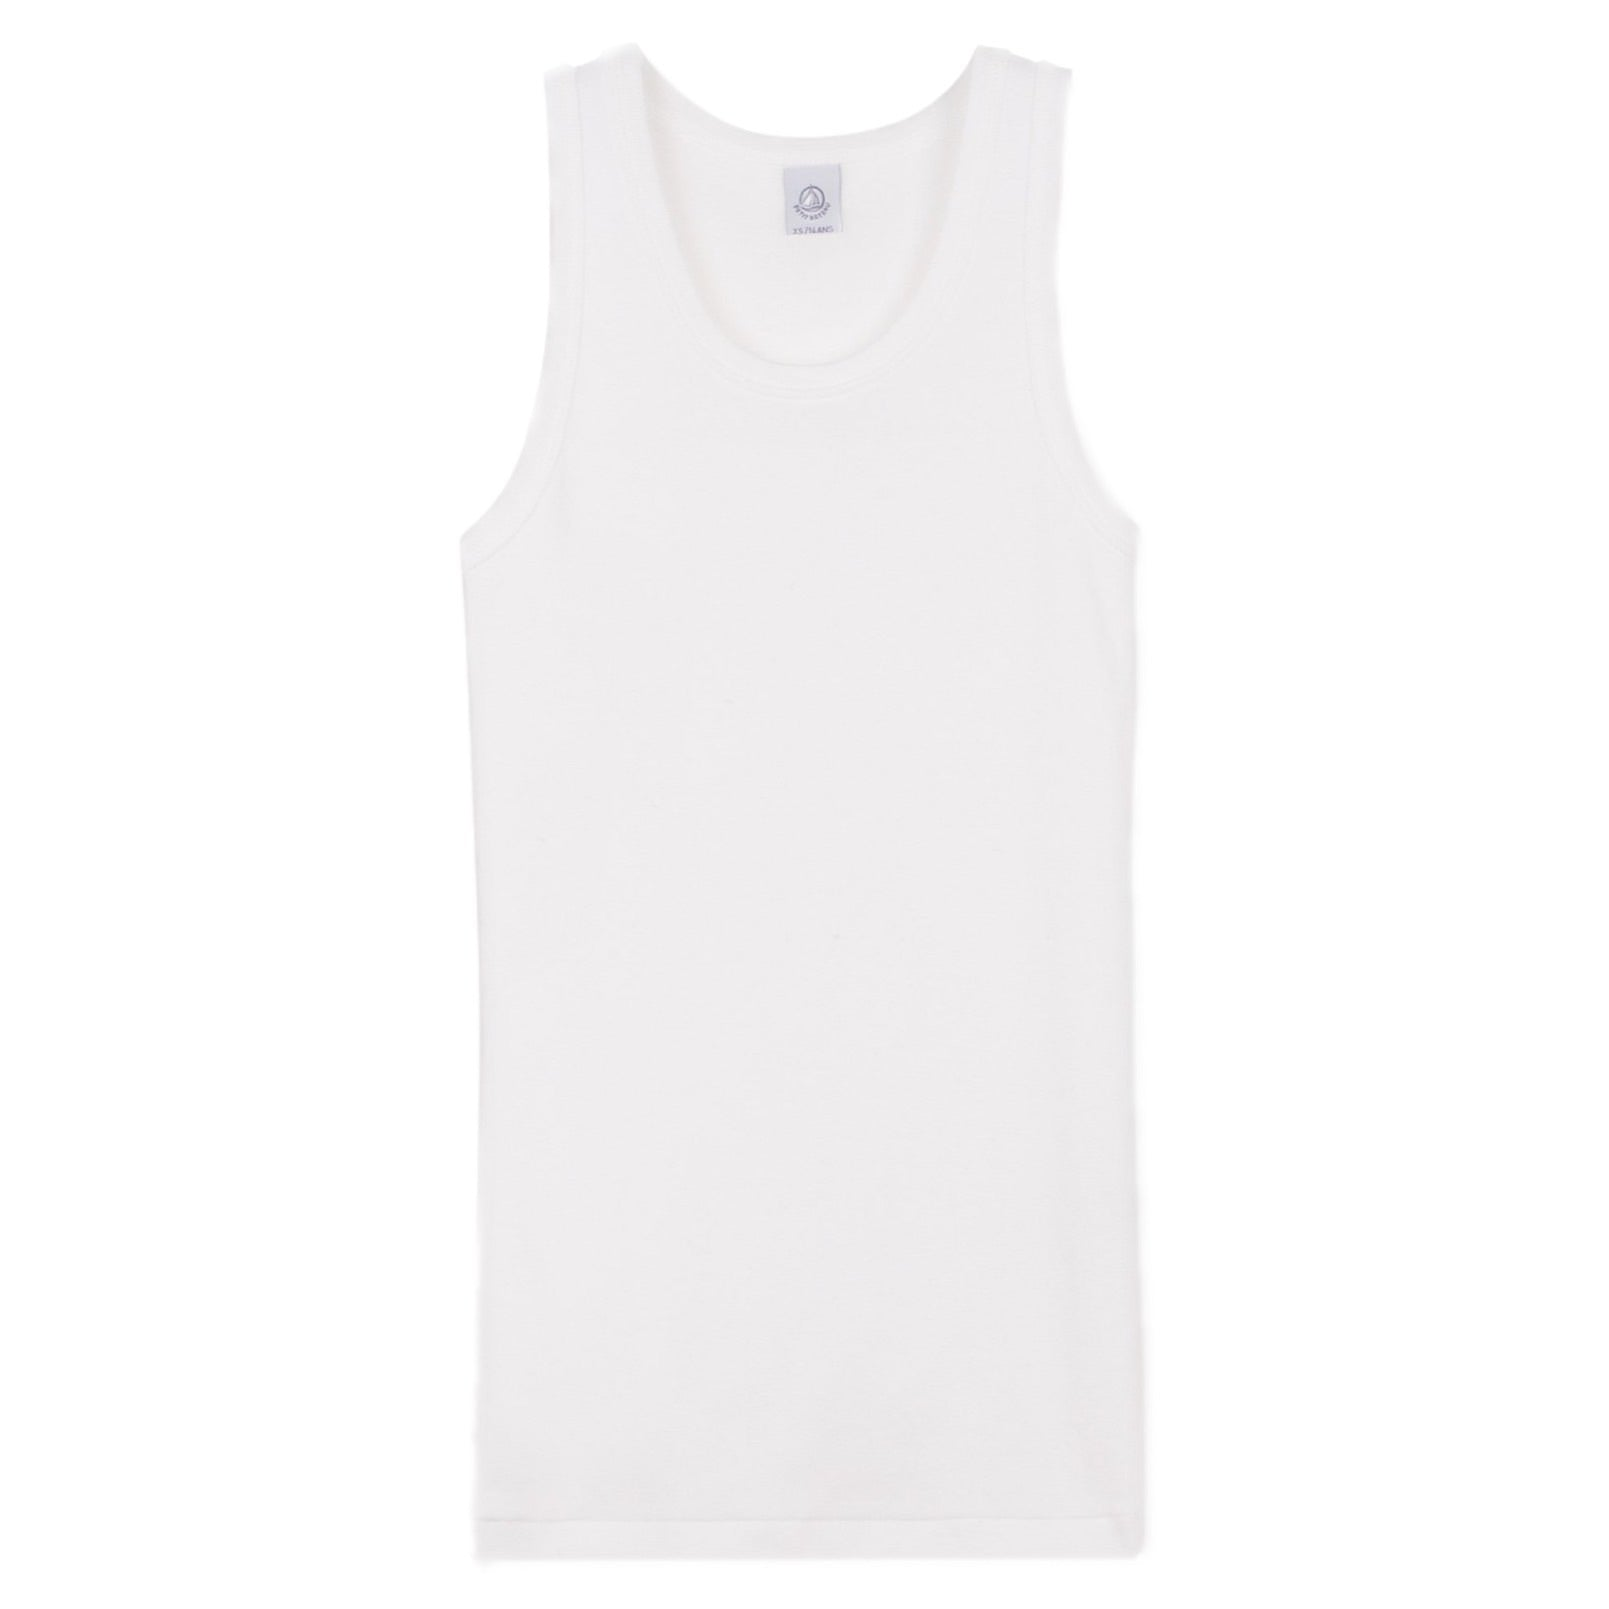 Crewneck Tank Top in White